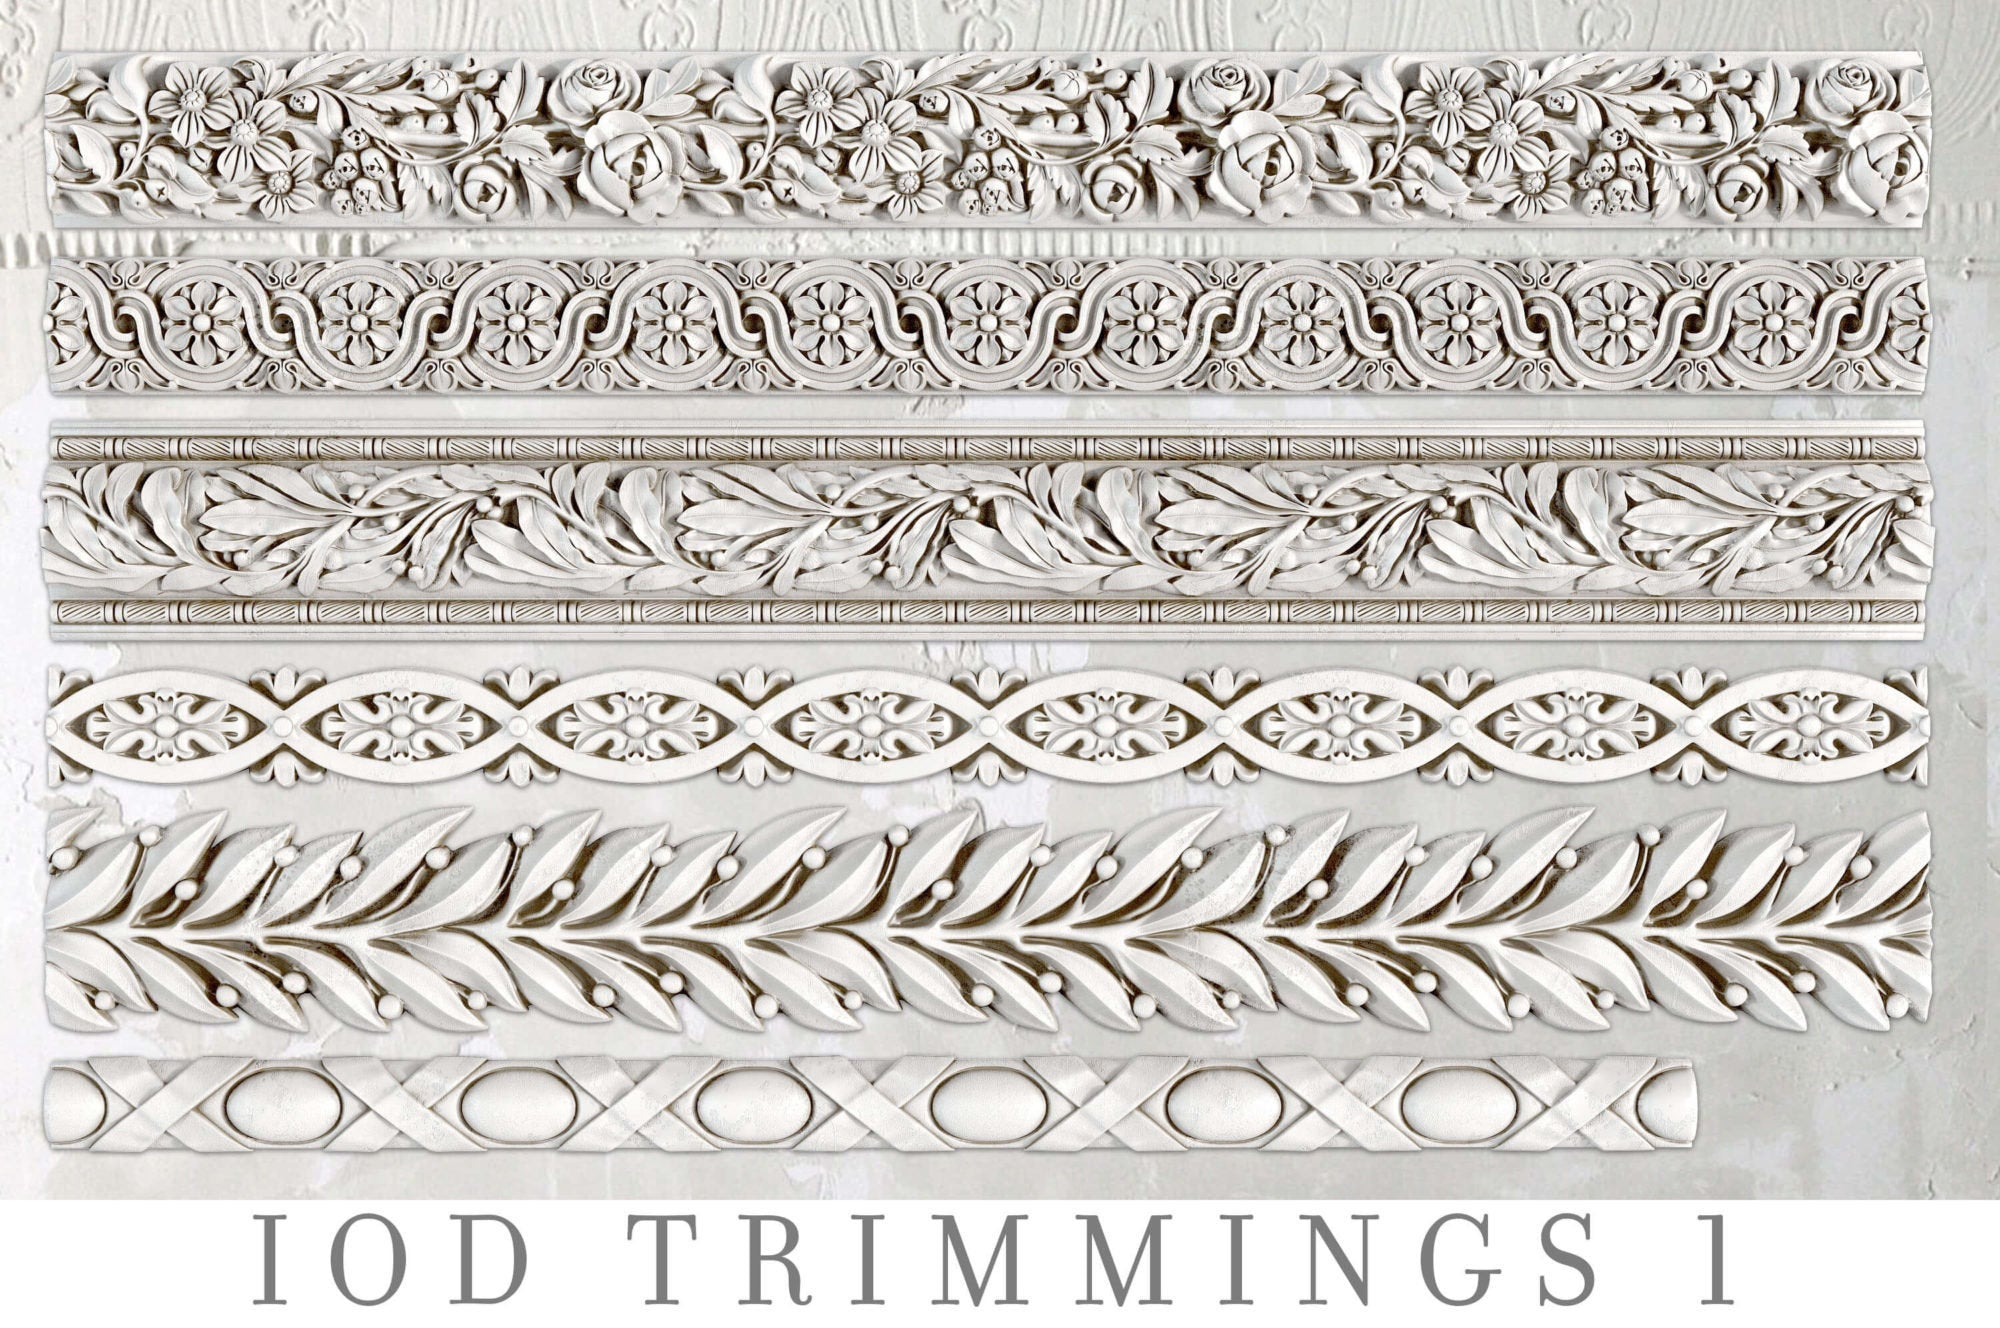 IOD Trimmings 1 Decor Mould, Casting mould for crafts, craft supply, soap mold, resin mold, French country mold, candy mold,